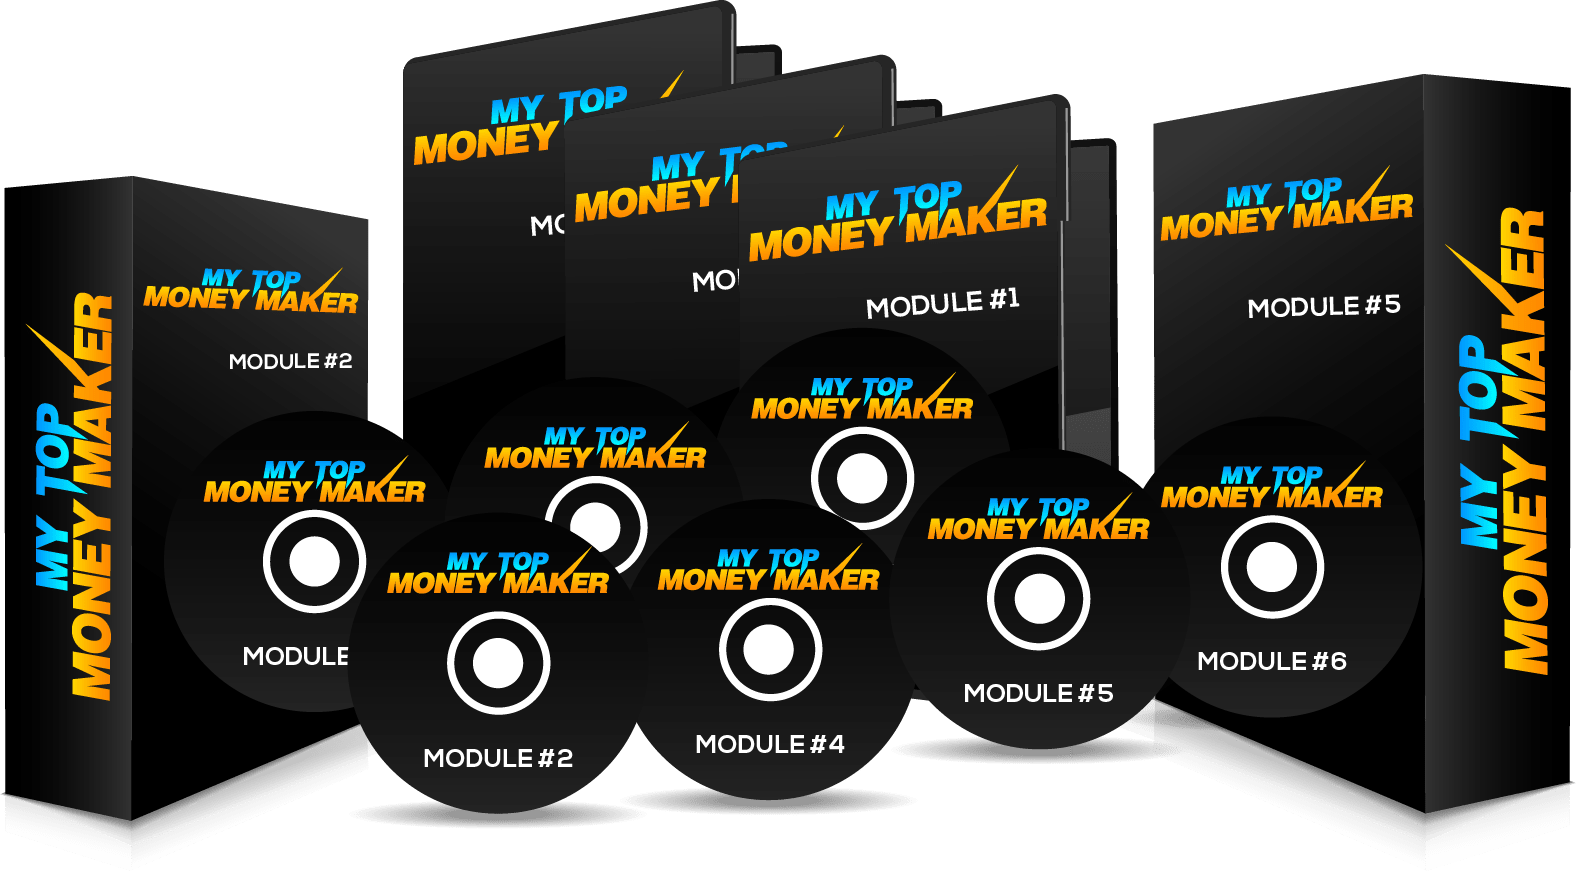 My top money maker review